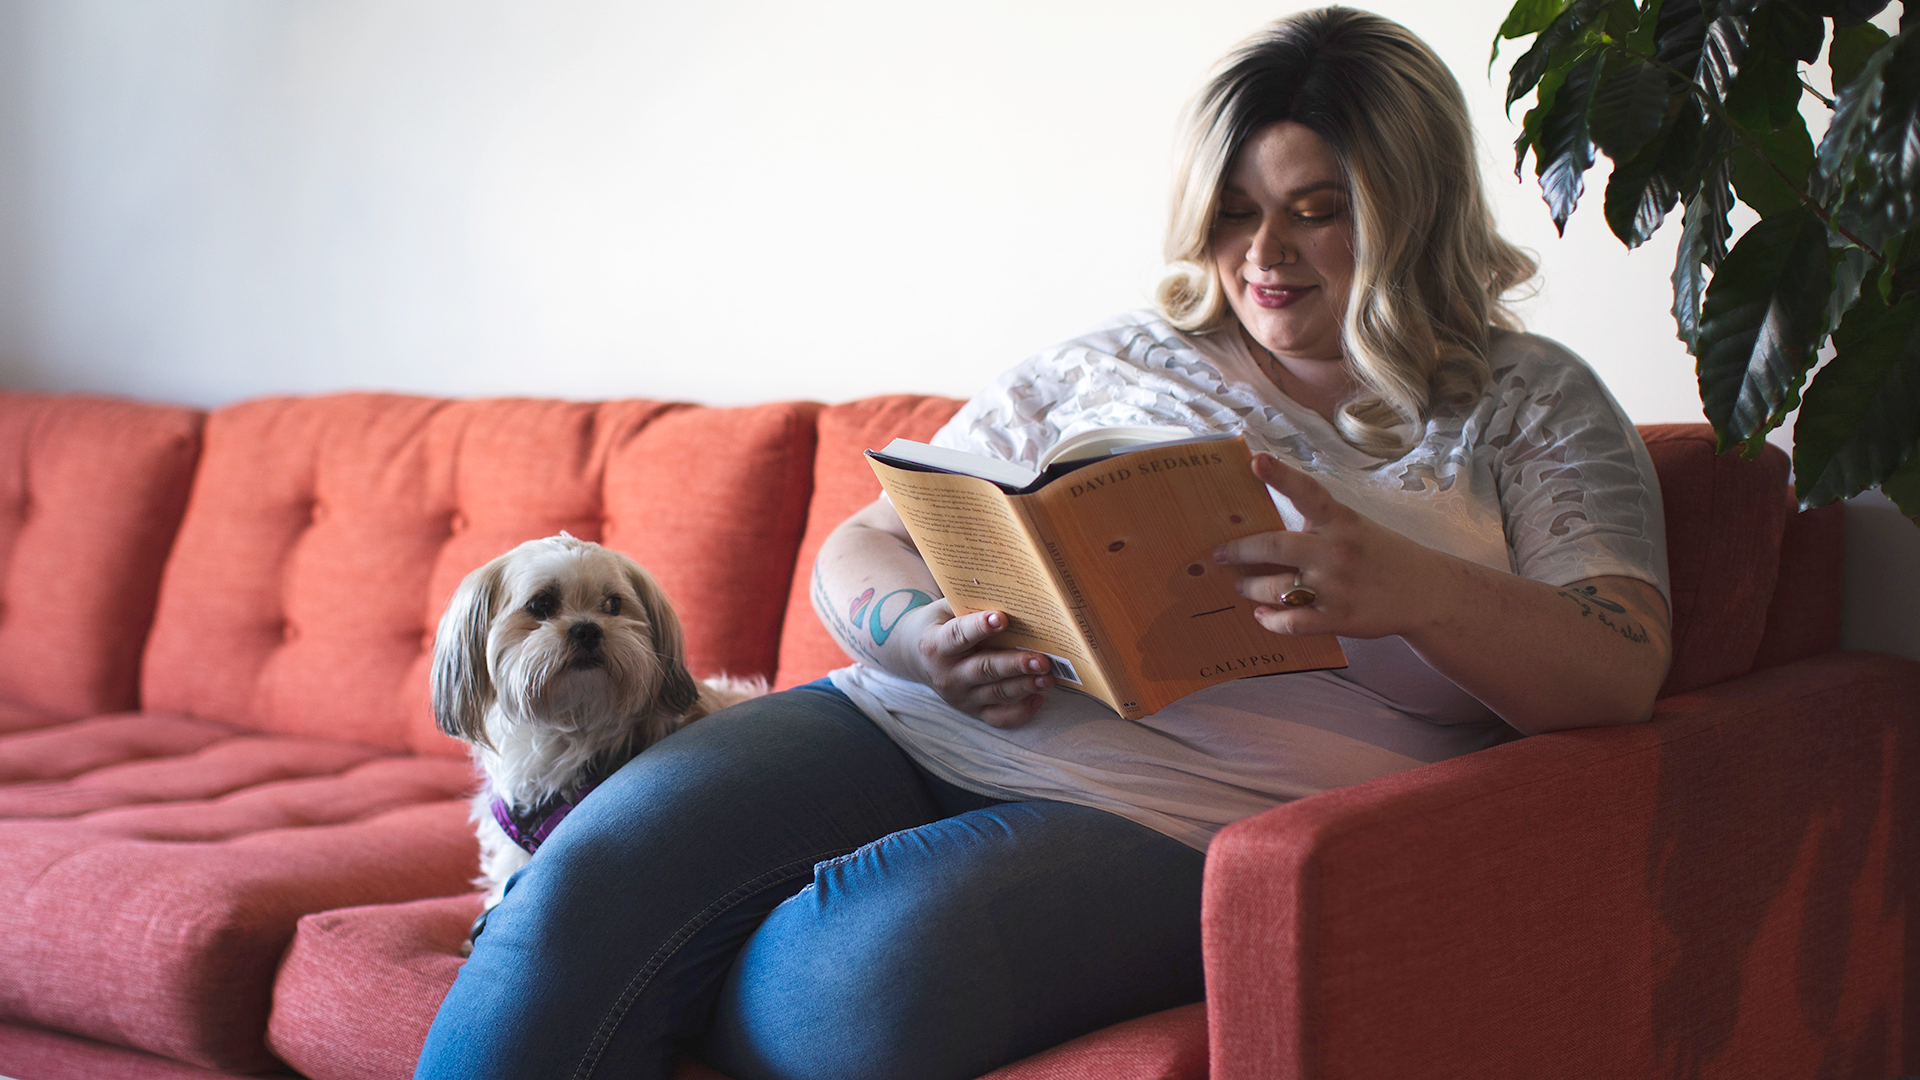 A woman sat on her sofa with her dog, reading a book.